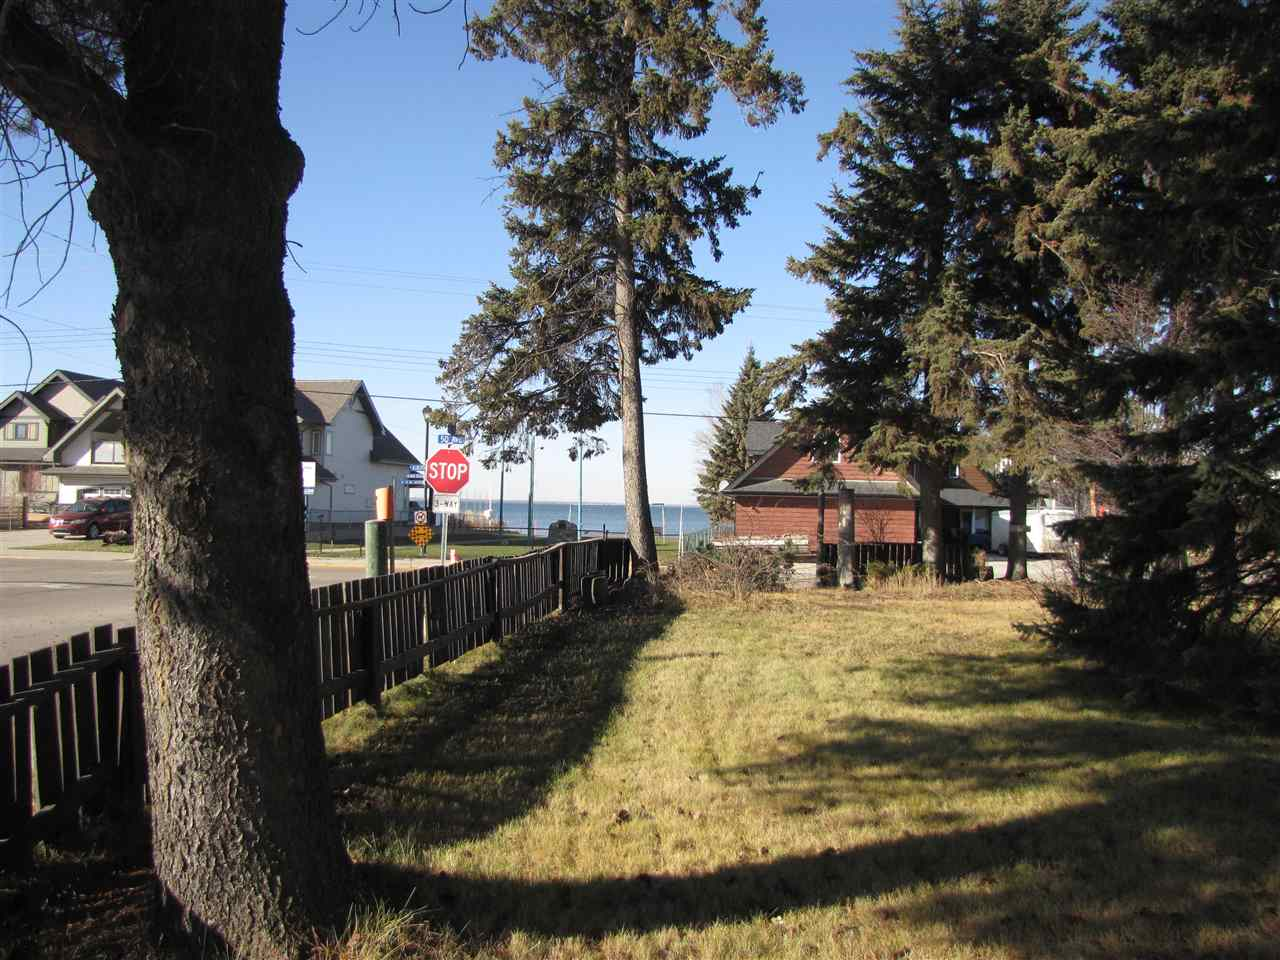 Large corner lot in Alberta Beach,with lake views from the property. Double lot is across the street from lakefront park and has many mature trees. Centrally located close to grocery, shopping, restaurants and golf course and boat launch. Property has an existing drilled well, hook up to municipal sewer, and natural gas ,power, telephone are at property line. Lot frontage faces south and west on 47 Street and 50 Avenue.